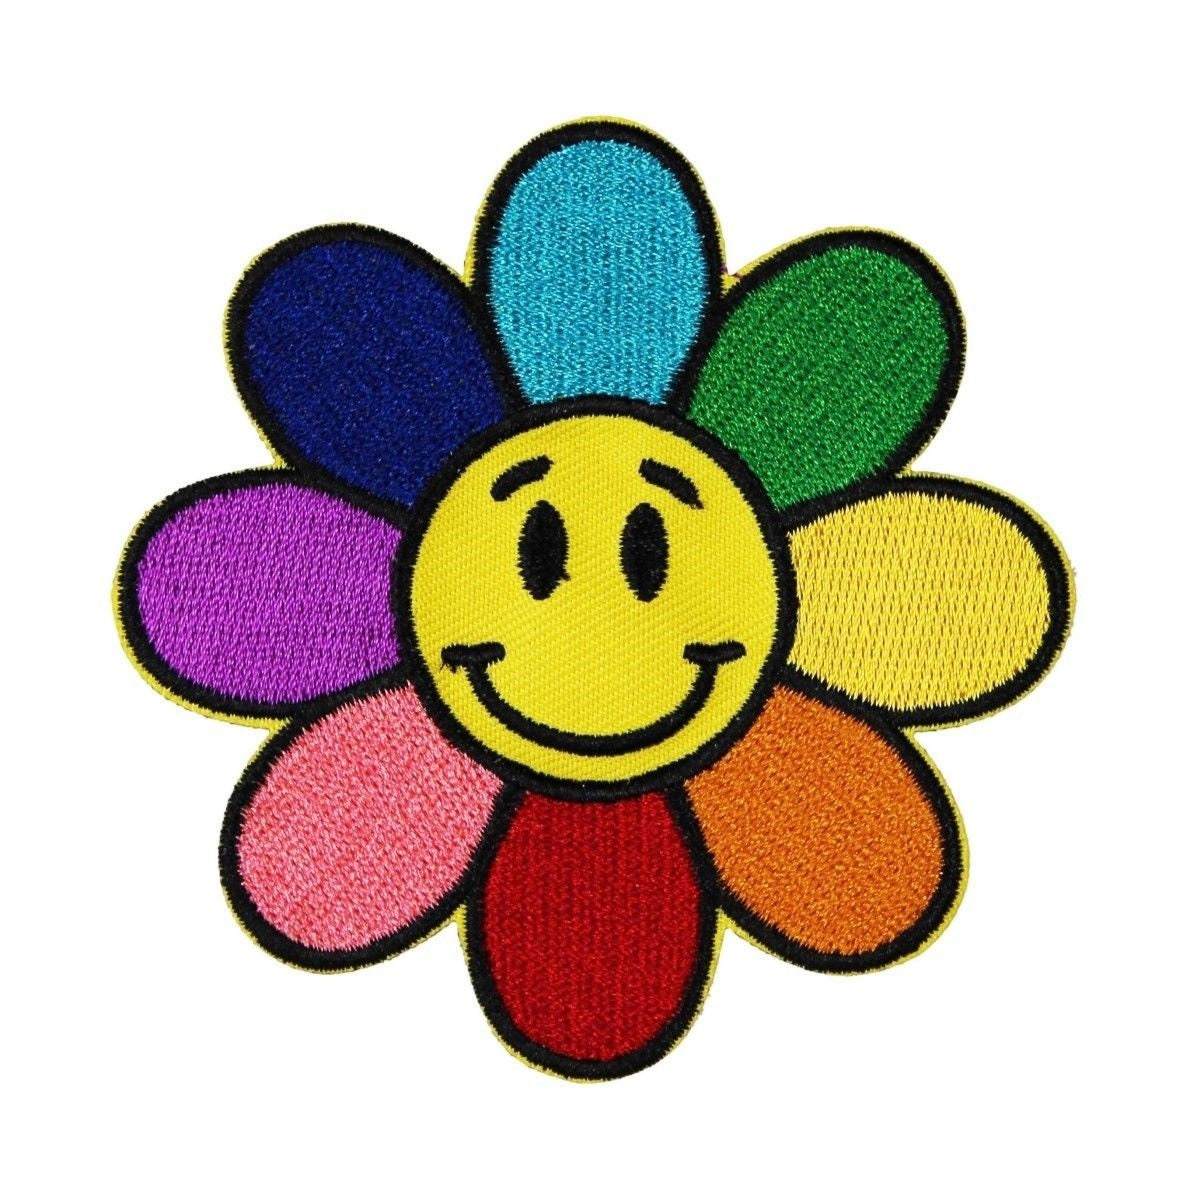 Rainbow flower smiley face patch hippie happy cute embroidered etsy zoom izmirmasajfo